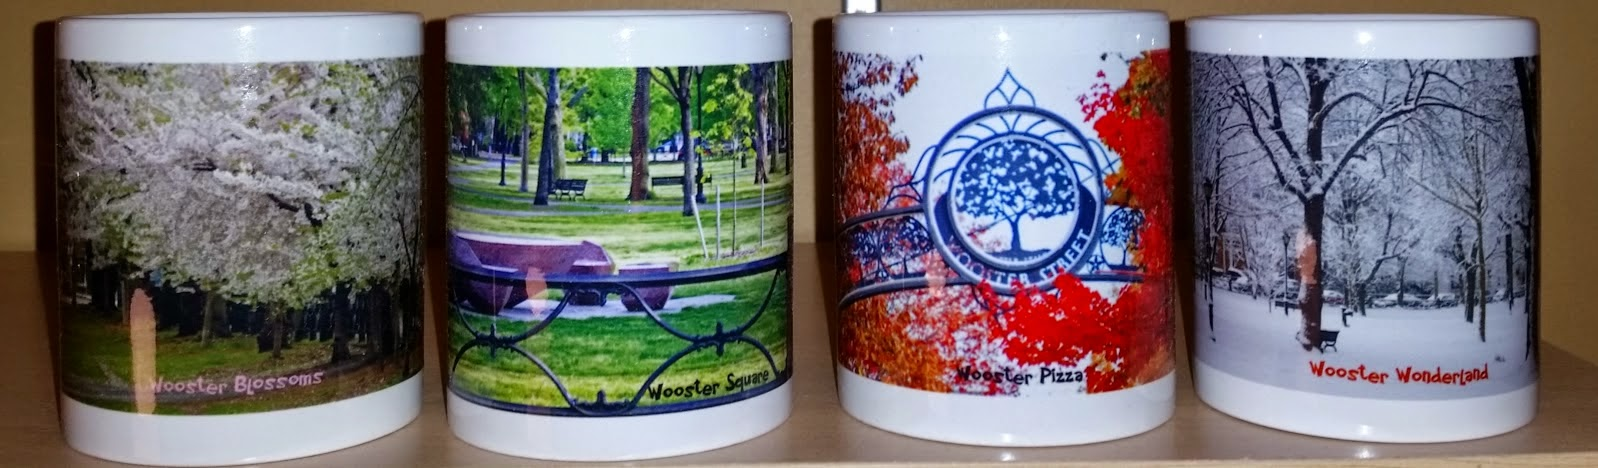 Wooster Square Four Season Mugs and Photographs for sale